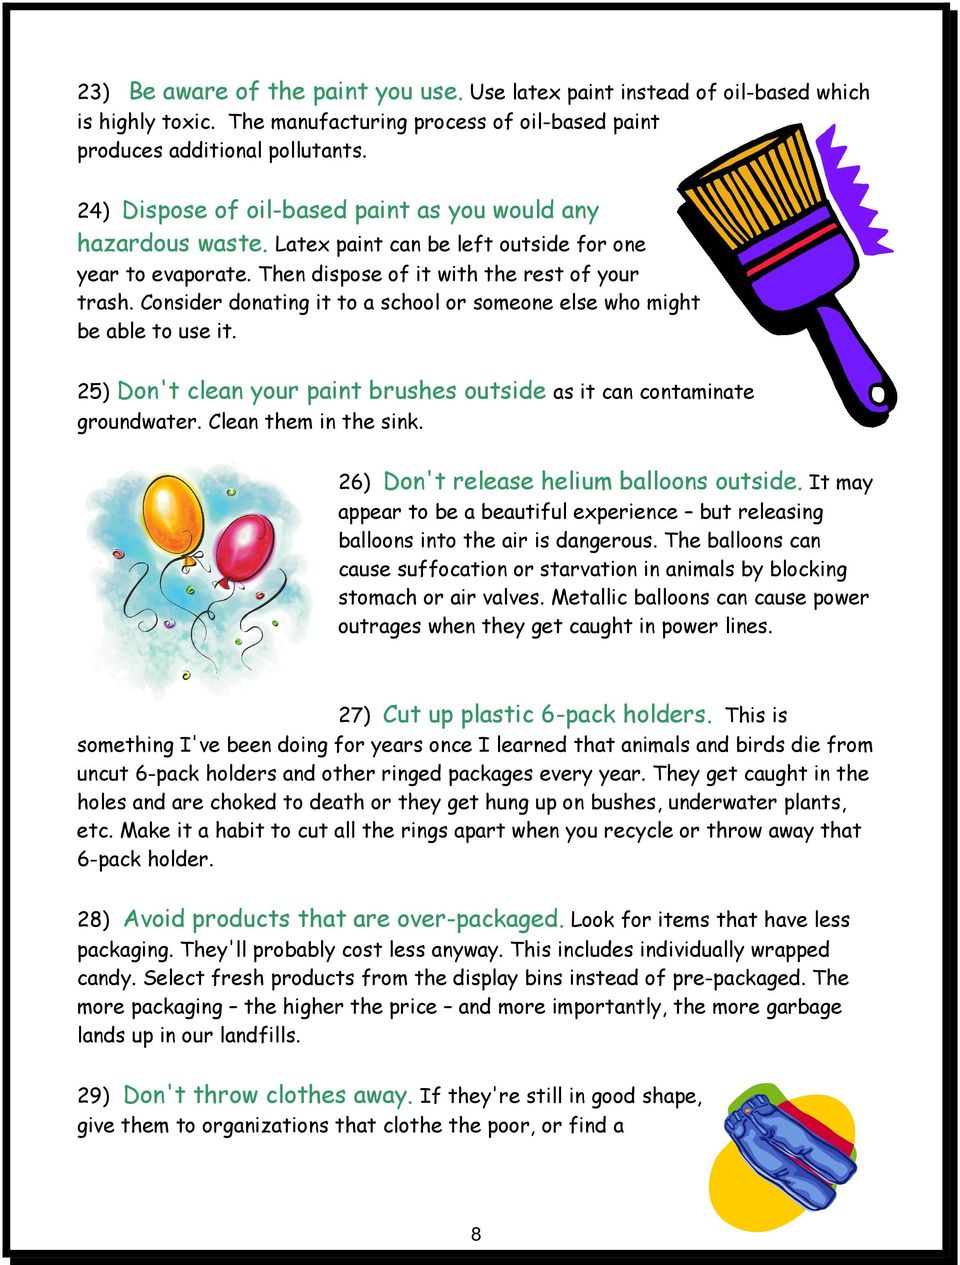 Consider donating it to a school or someone else who might be able to use it. 25) Don't clean your paint brushes outside as it can contaminate groundwater. Clean them in the sink.